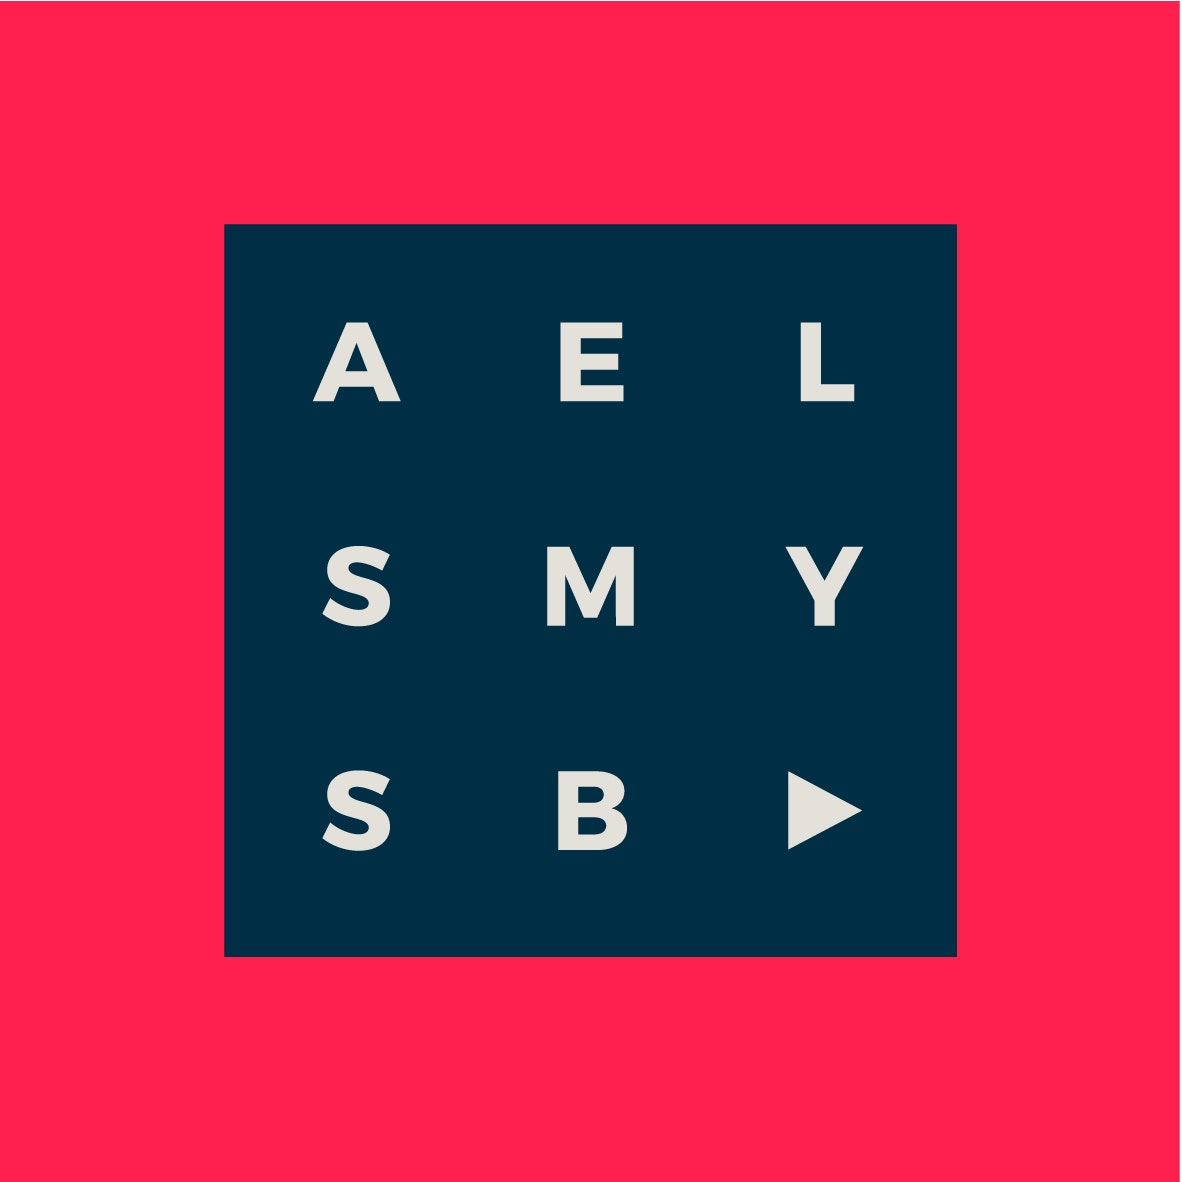 Assembly & Element present Day & Night in Shoreditch